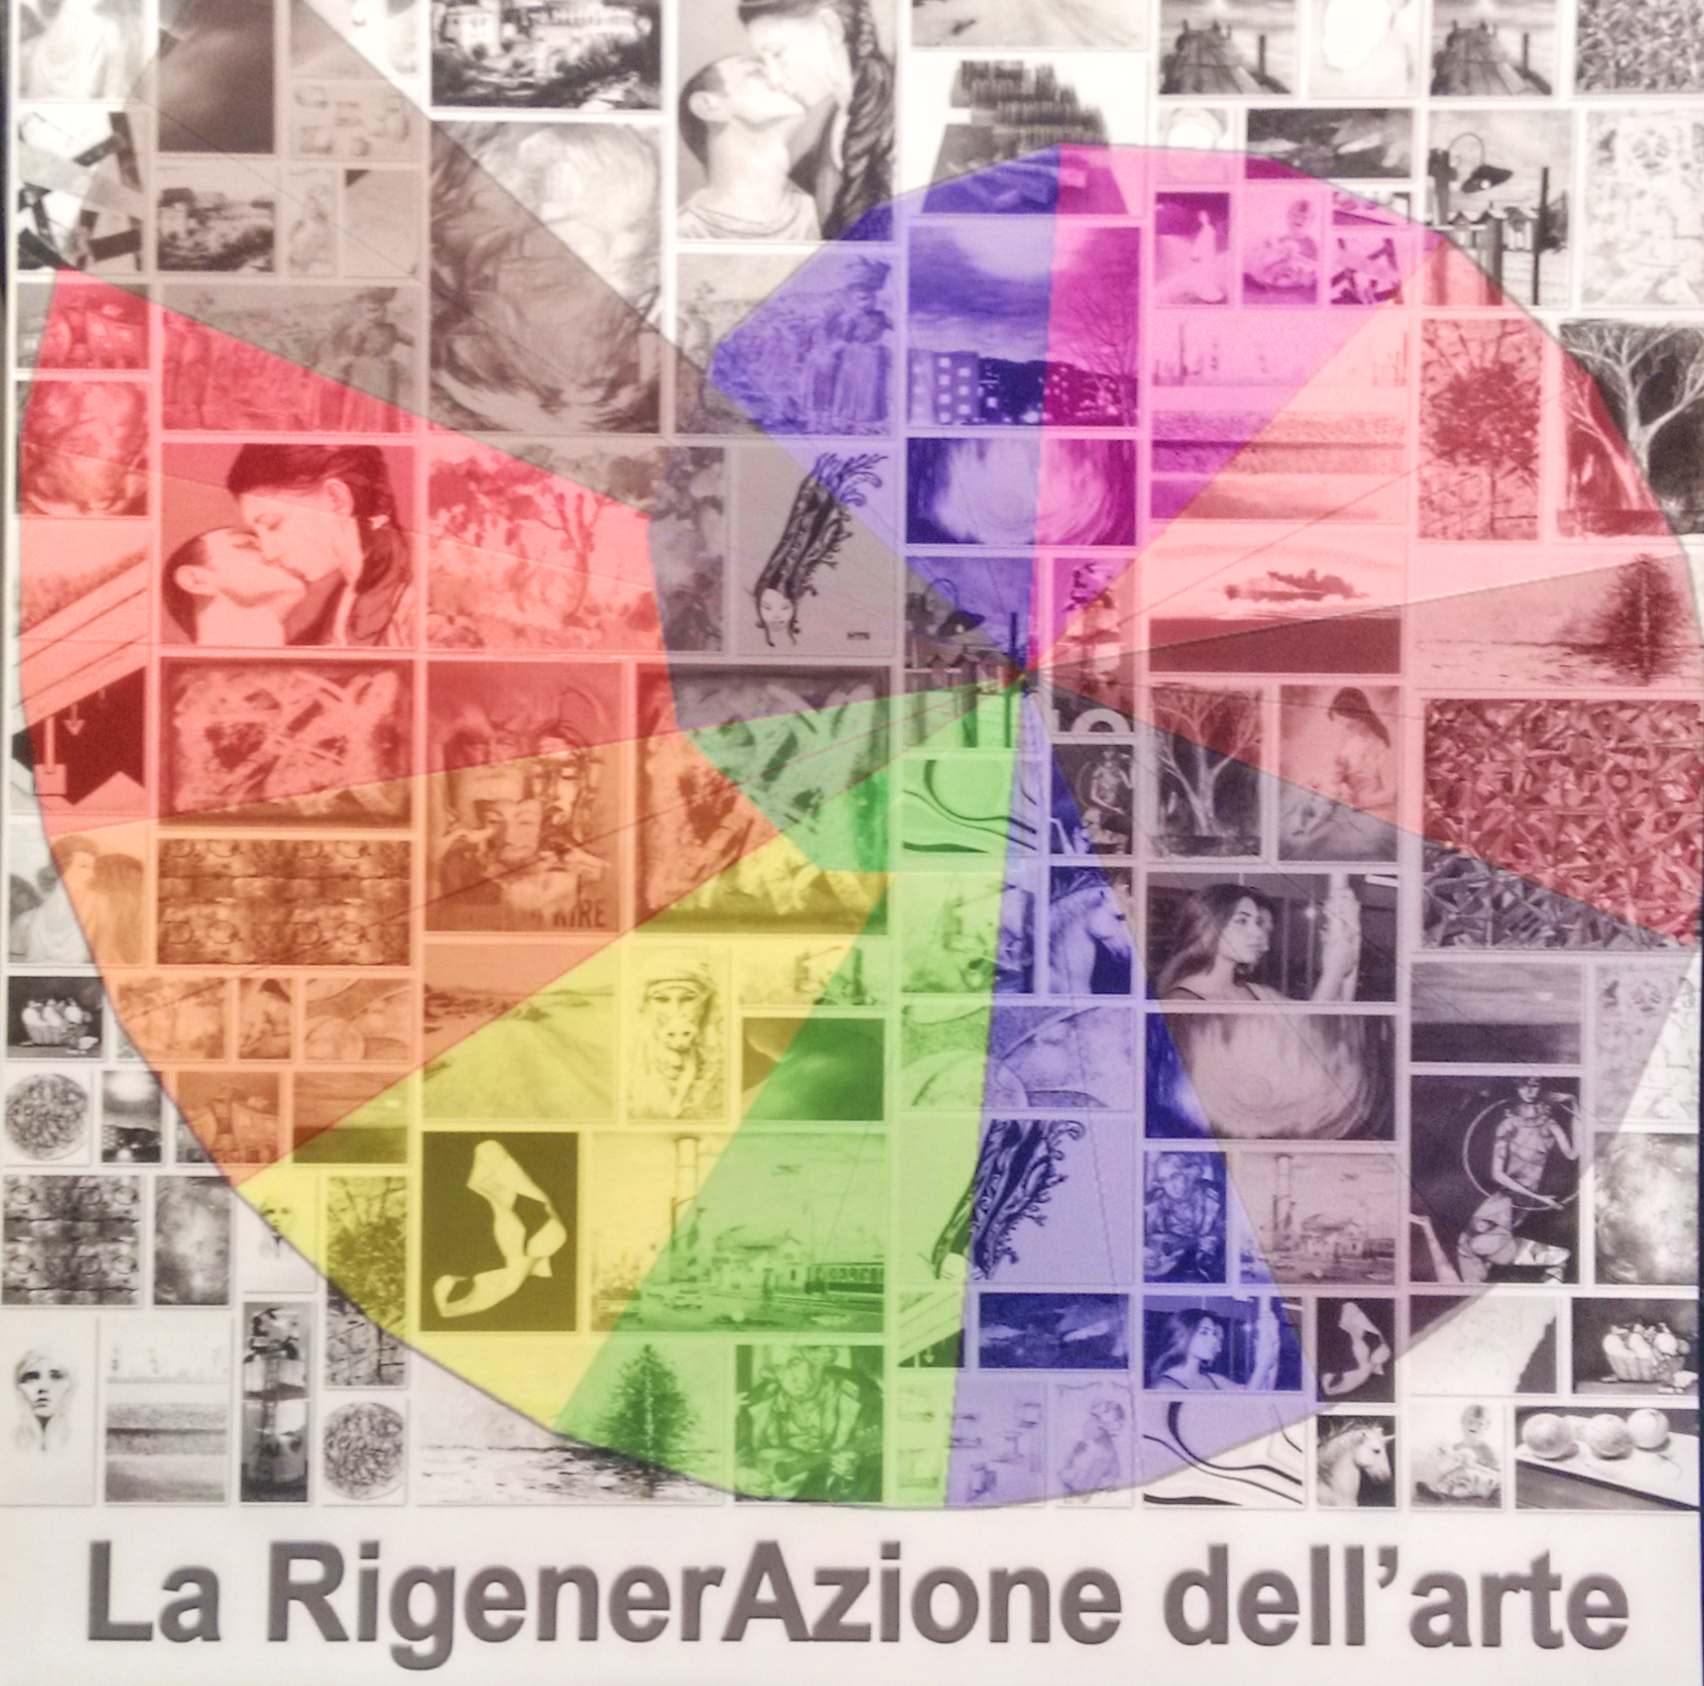 Autori - La RigenerAzione dell'arte | Art RegenerAtion - Authors